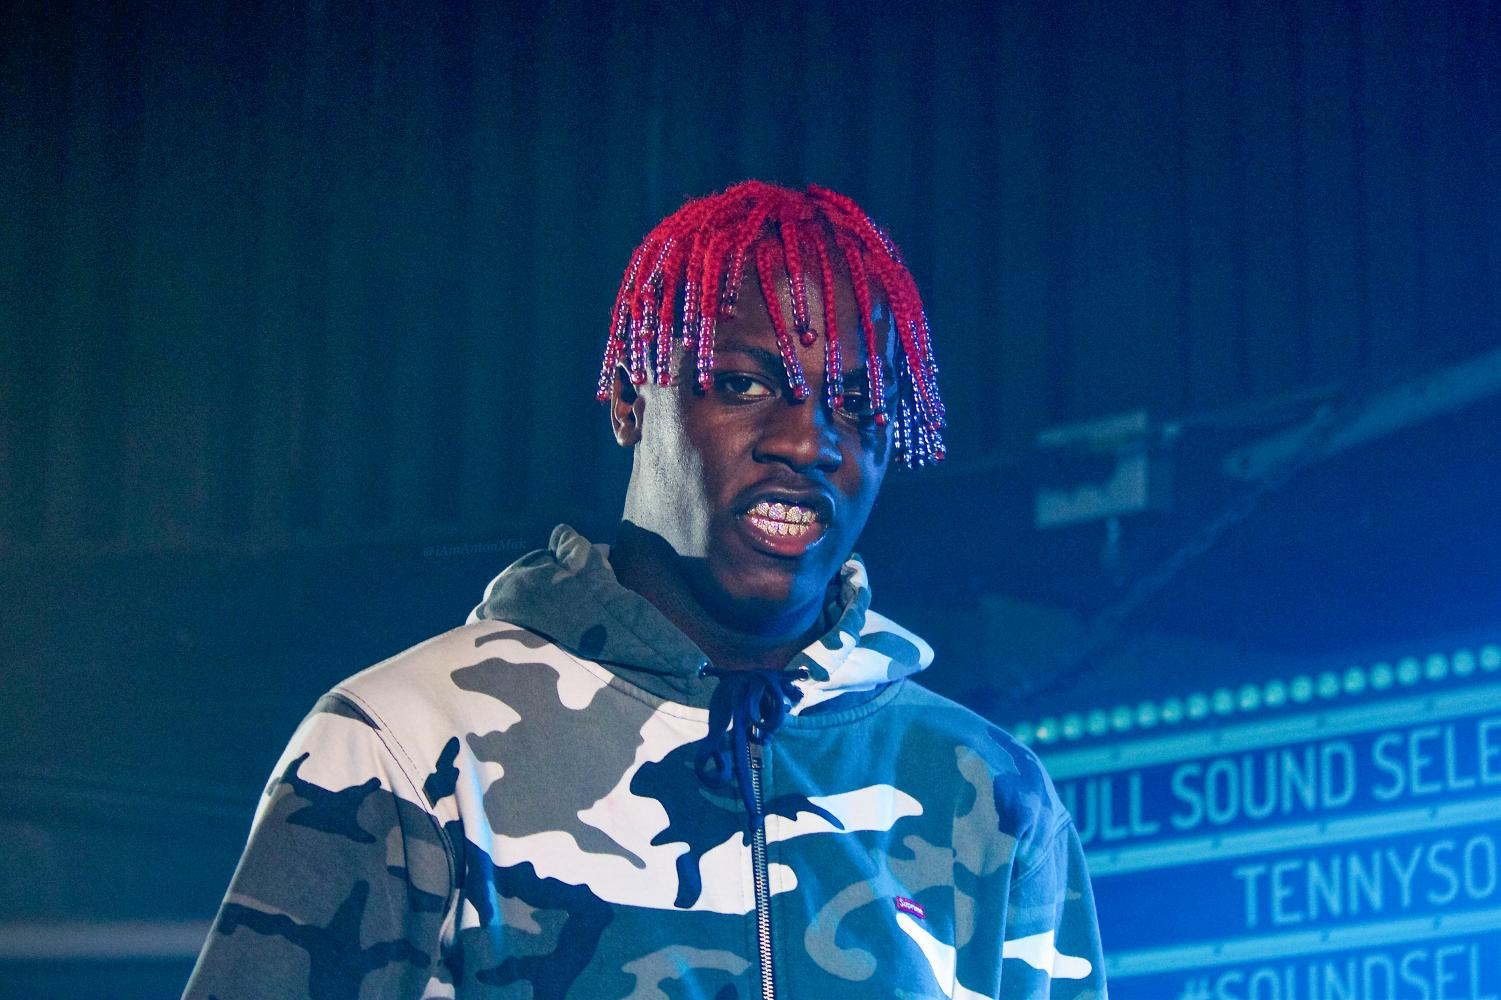 Rapper Lil Yachty poses for a photo in August 2016. Spring Jam will be Sunday on the Main Quad at 2 p.m.